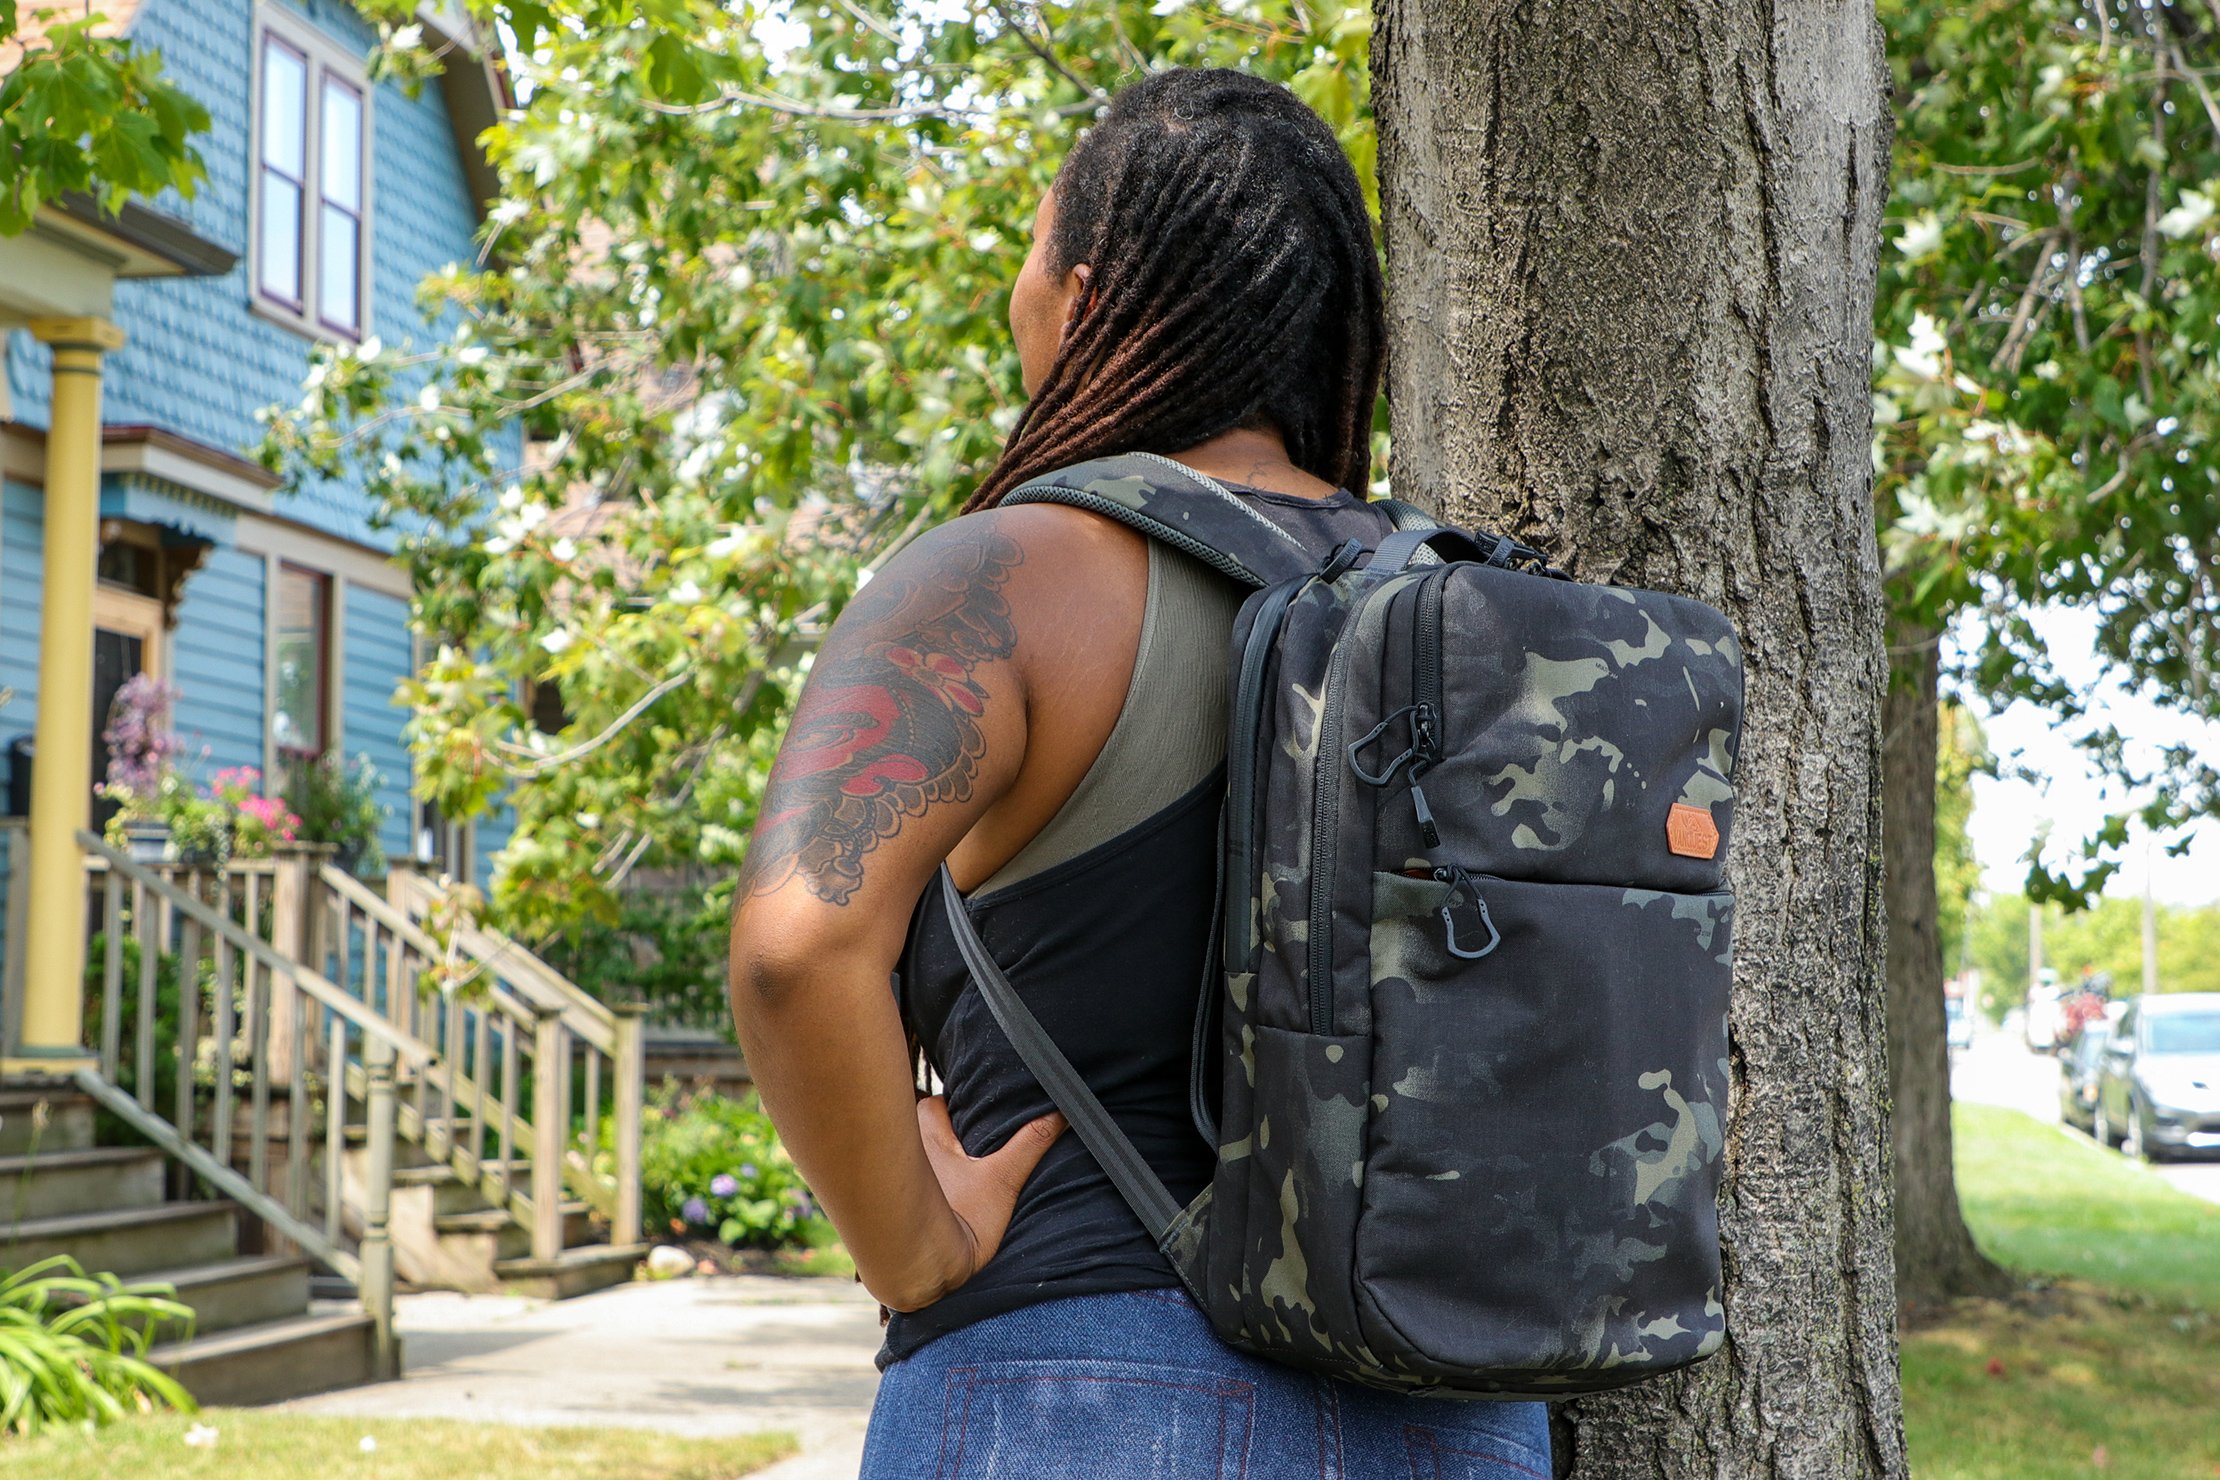 Vanquest ADDAX-18 Backpack usage image